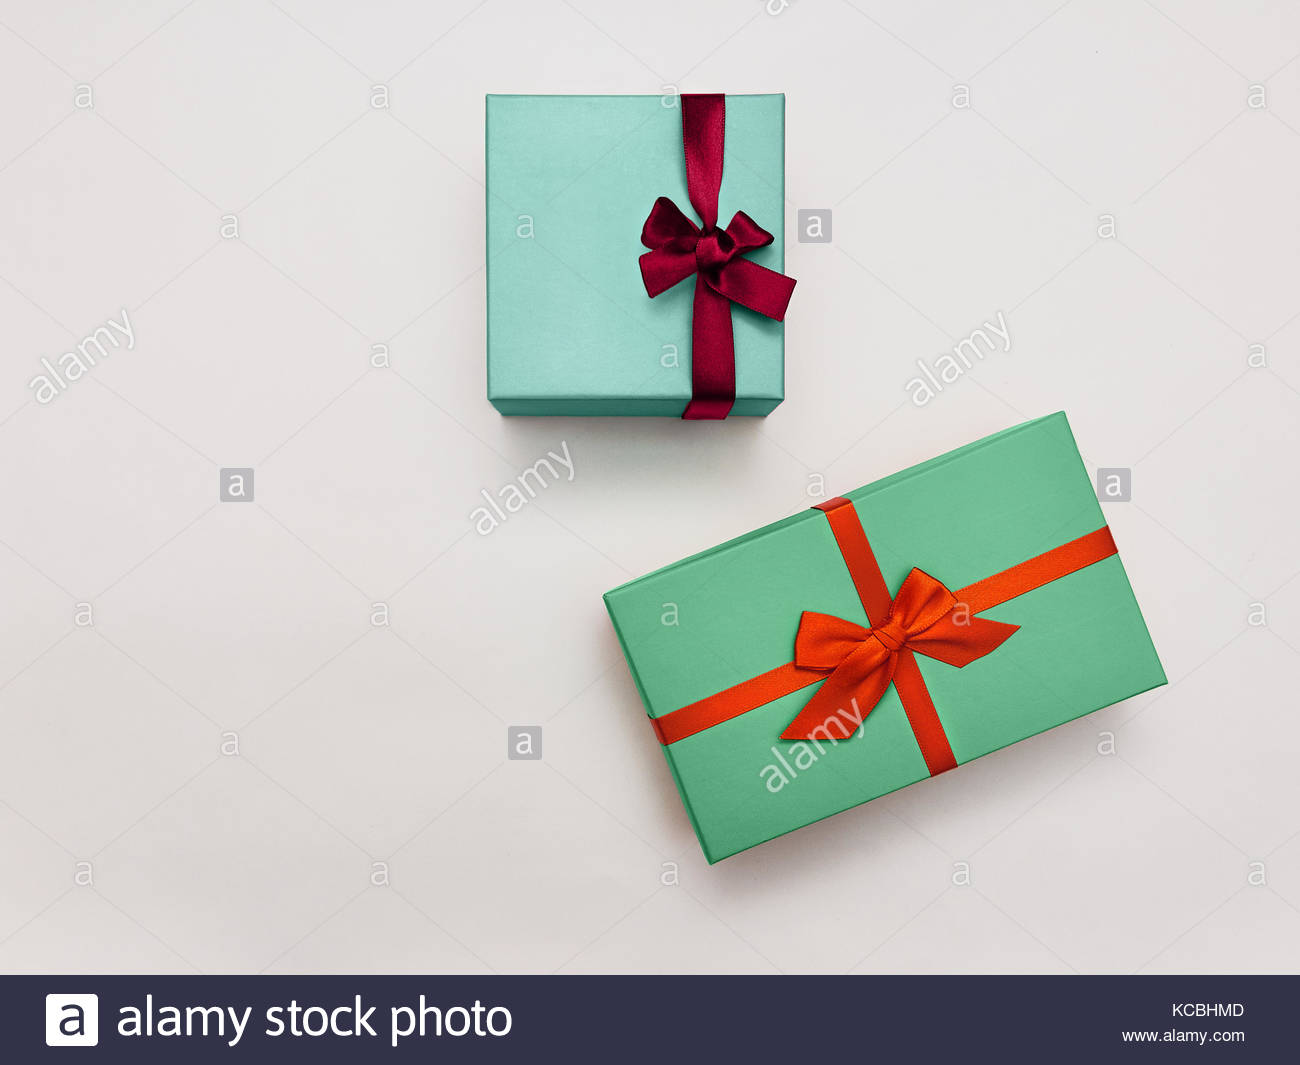 Gift Box Template Stock Photos & Gift Box Template Stock Images - Alamy